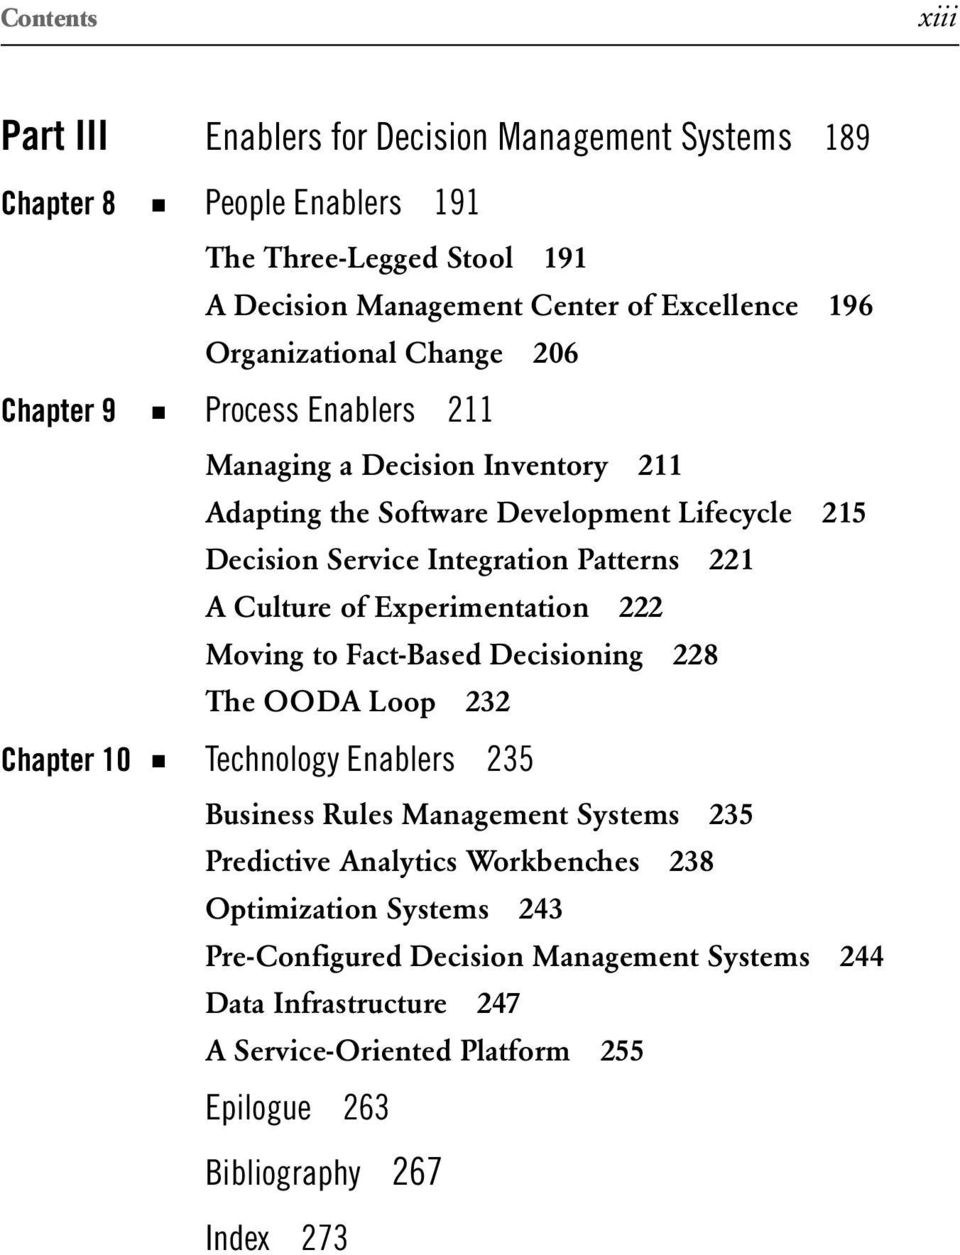 221 A Culture of Experimentation 222 Moving to Fact-Based Decisioning 228 The OODA Loop 232 Chapter 10 Technology Enablers 235 Business Rules Management Systems 235 Predictive